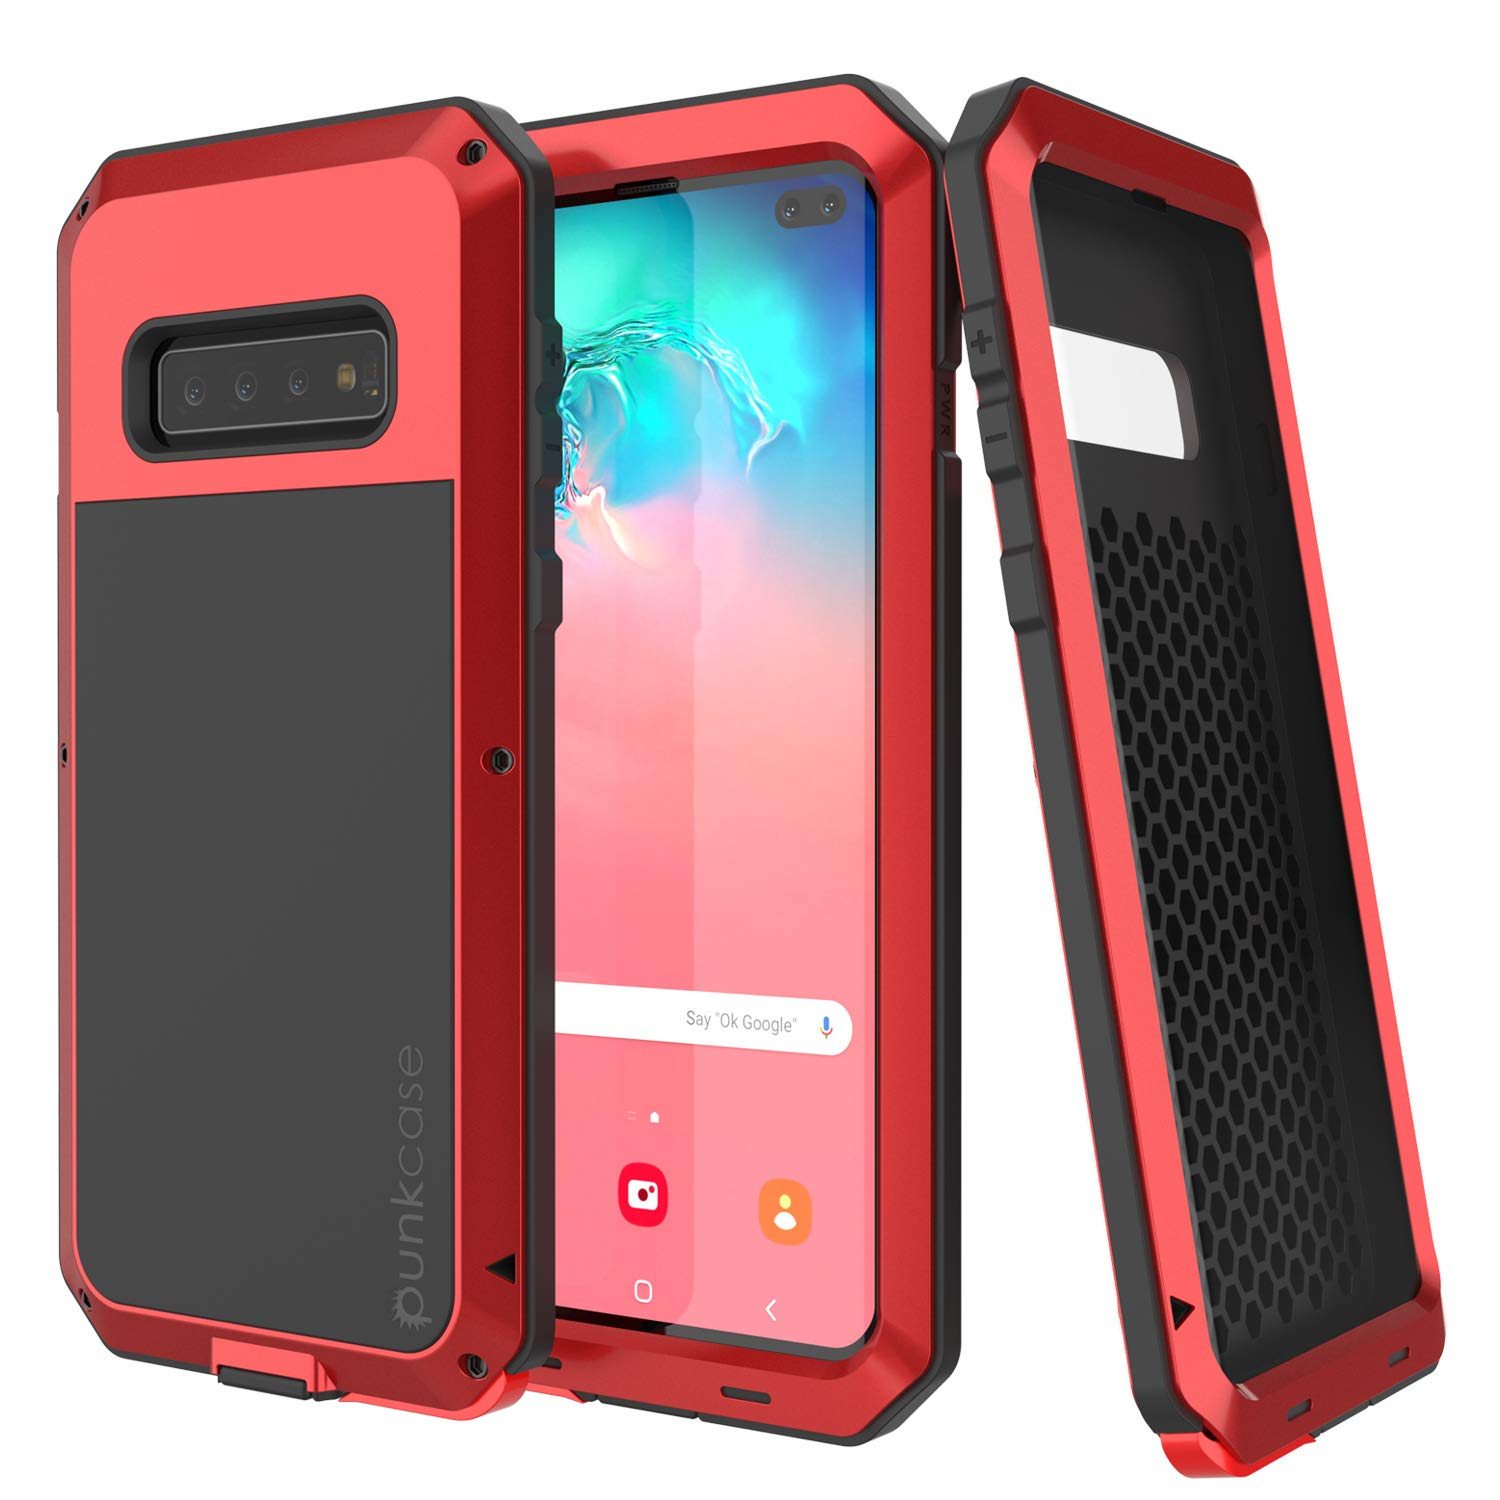 Galaxy S10+ Plus Metal Case, Heavy Duty Military Grade Rugged Armor Cover [Red]